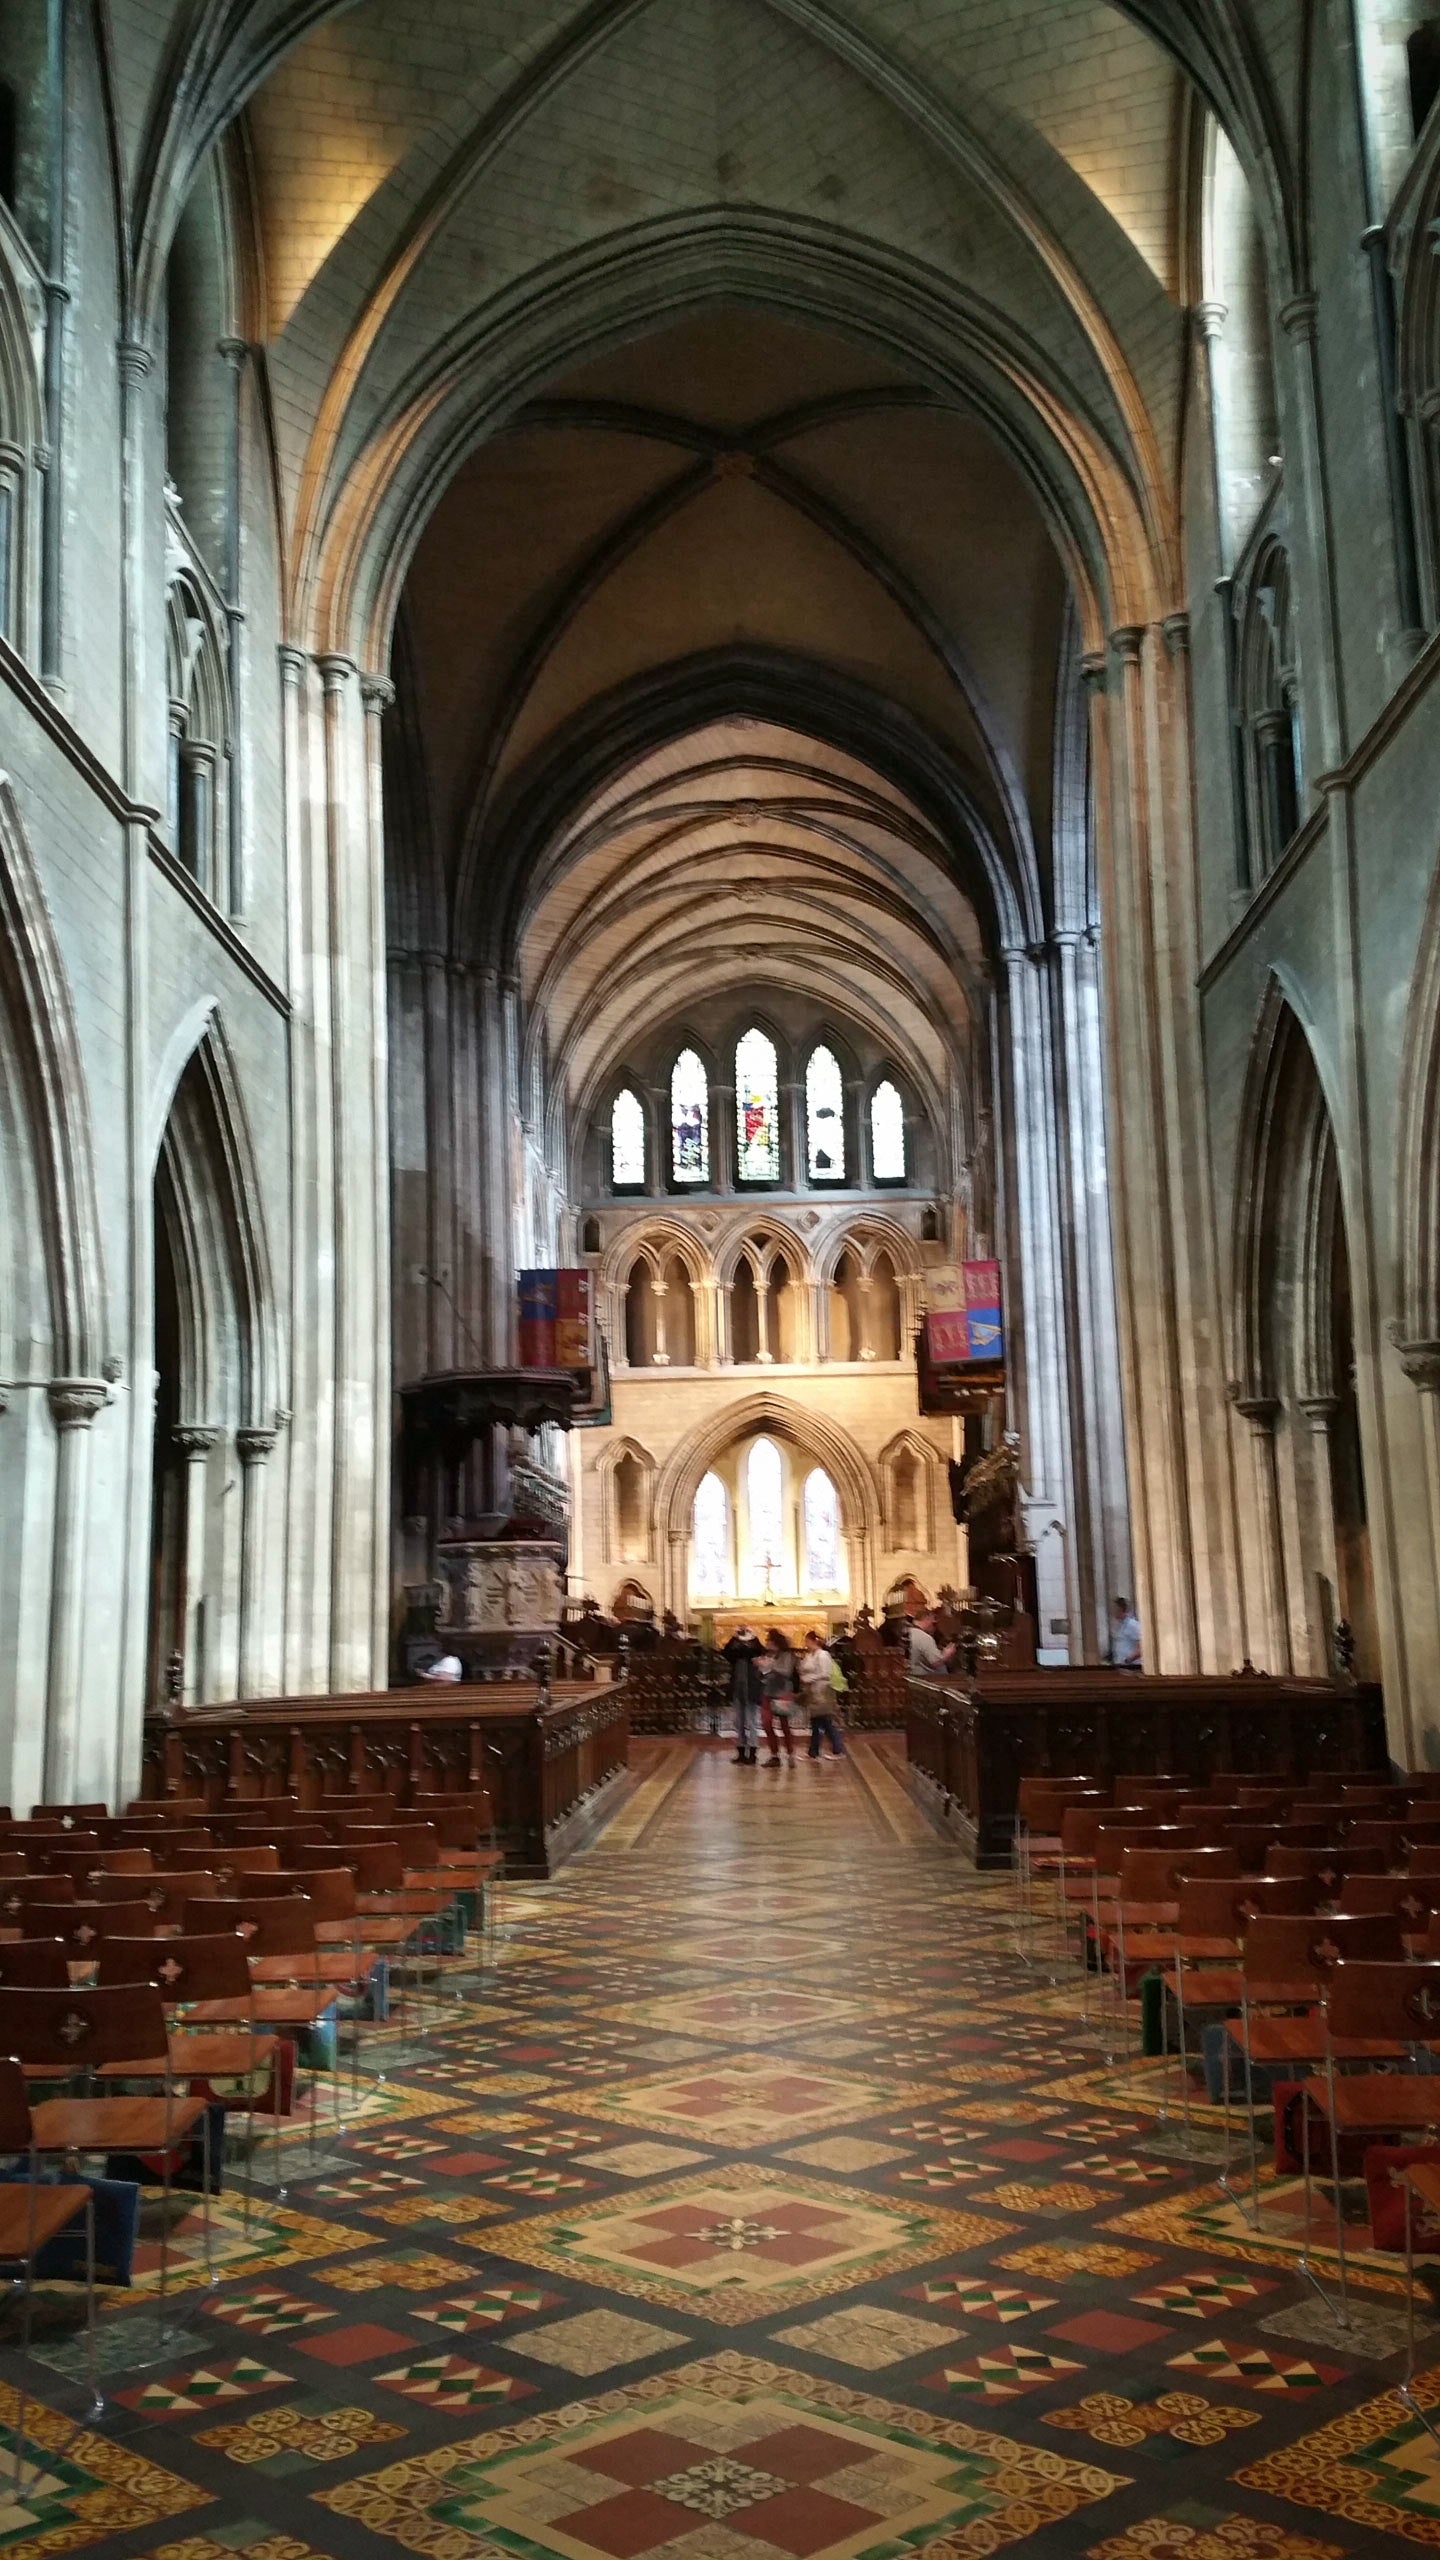 St. Patrick's Cathedral - Tracy McCrackin Photography